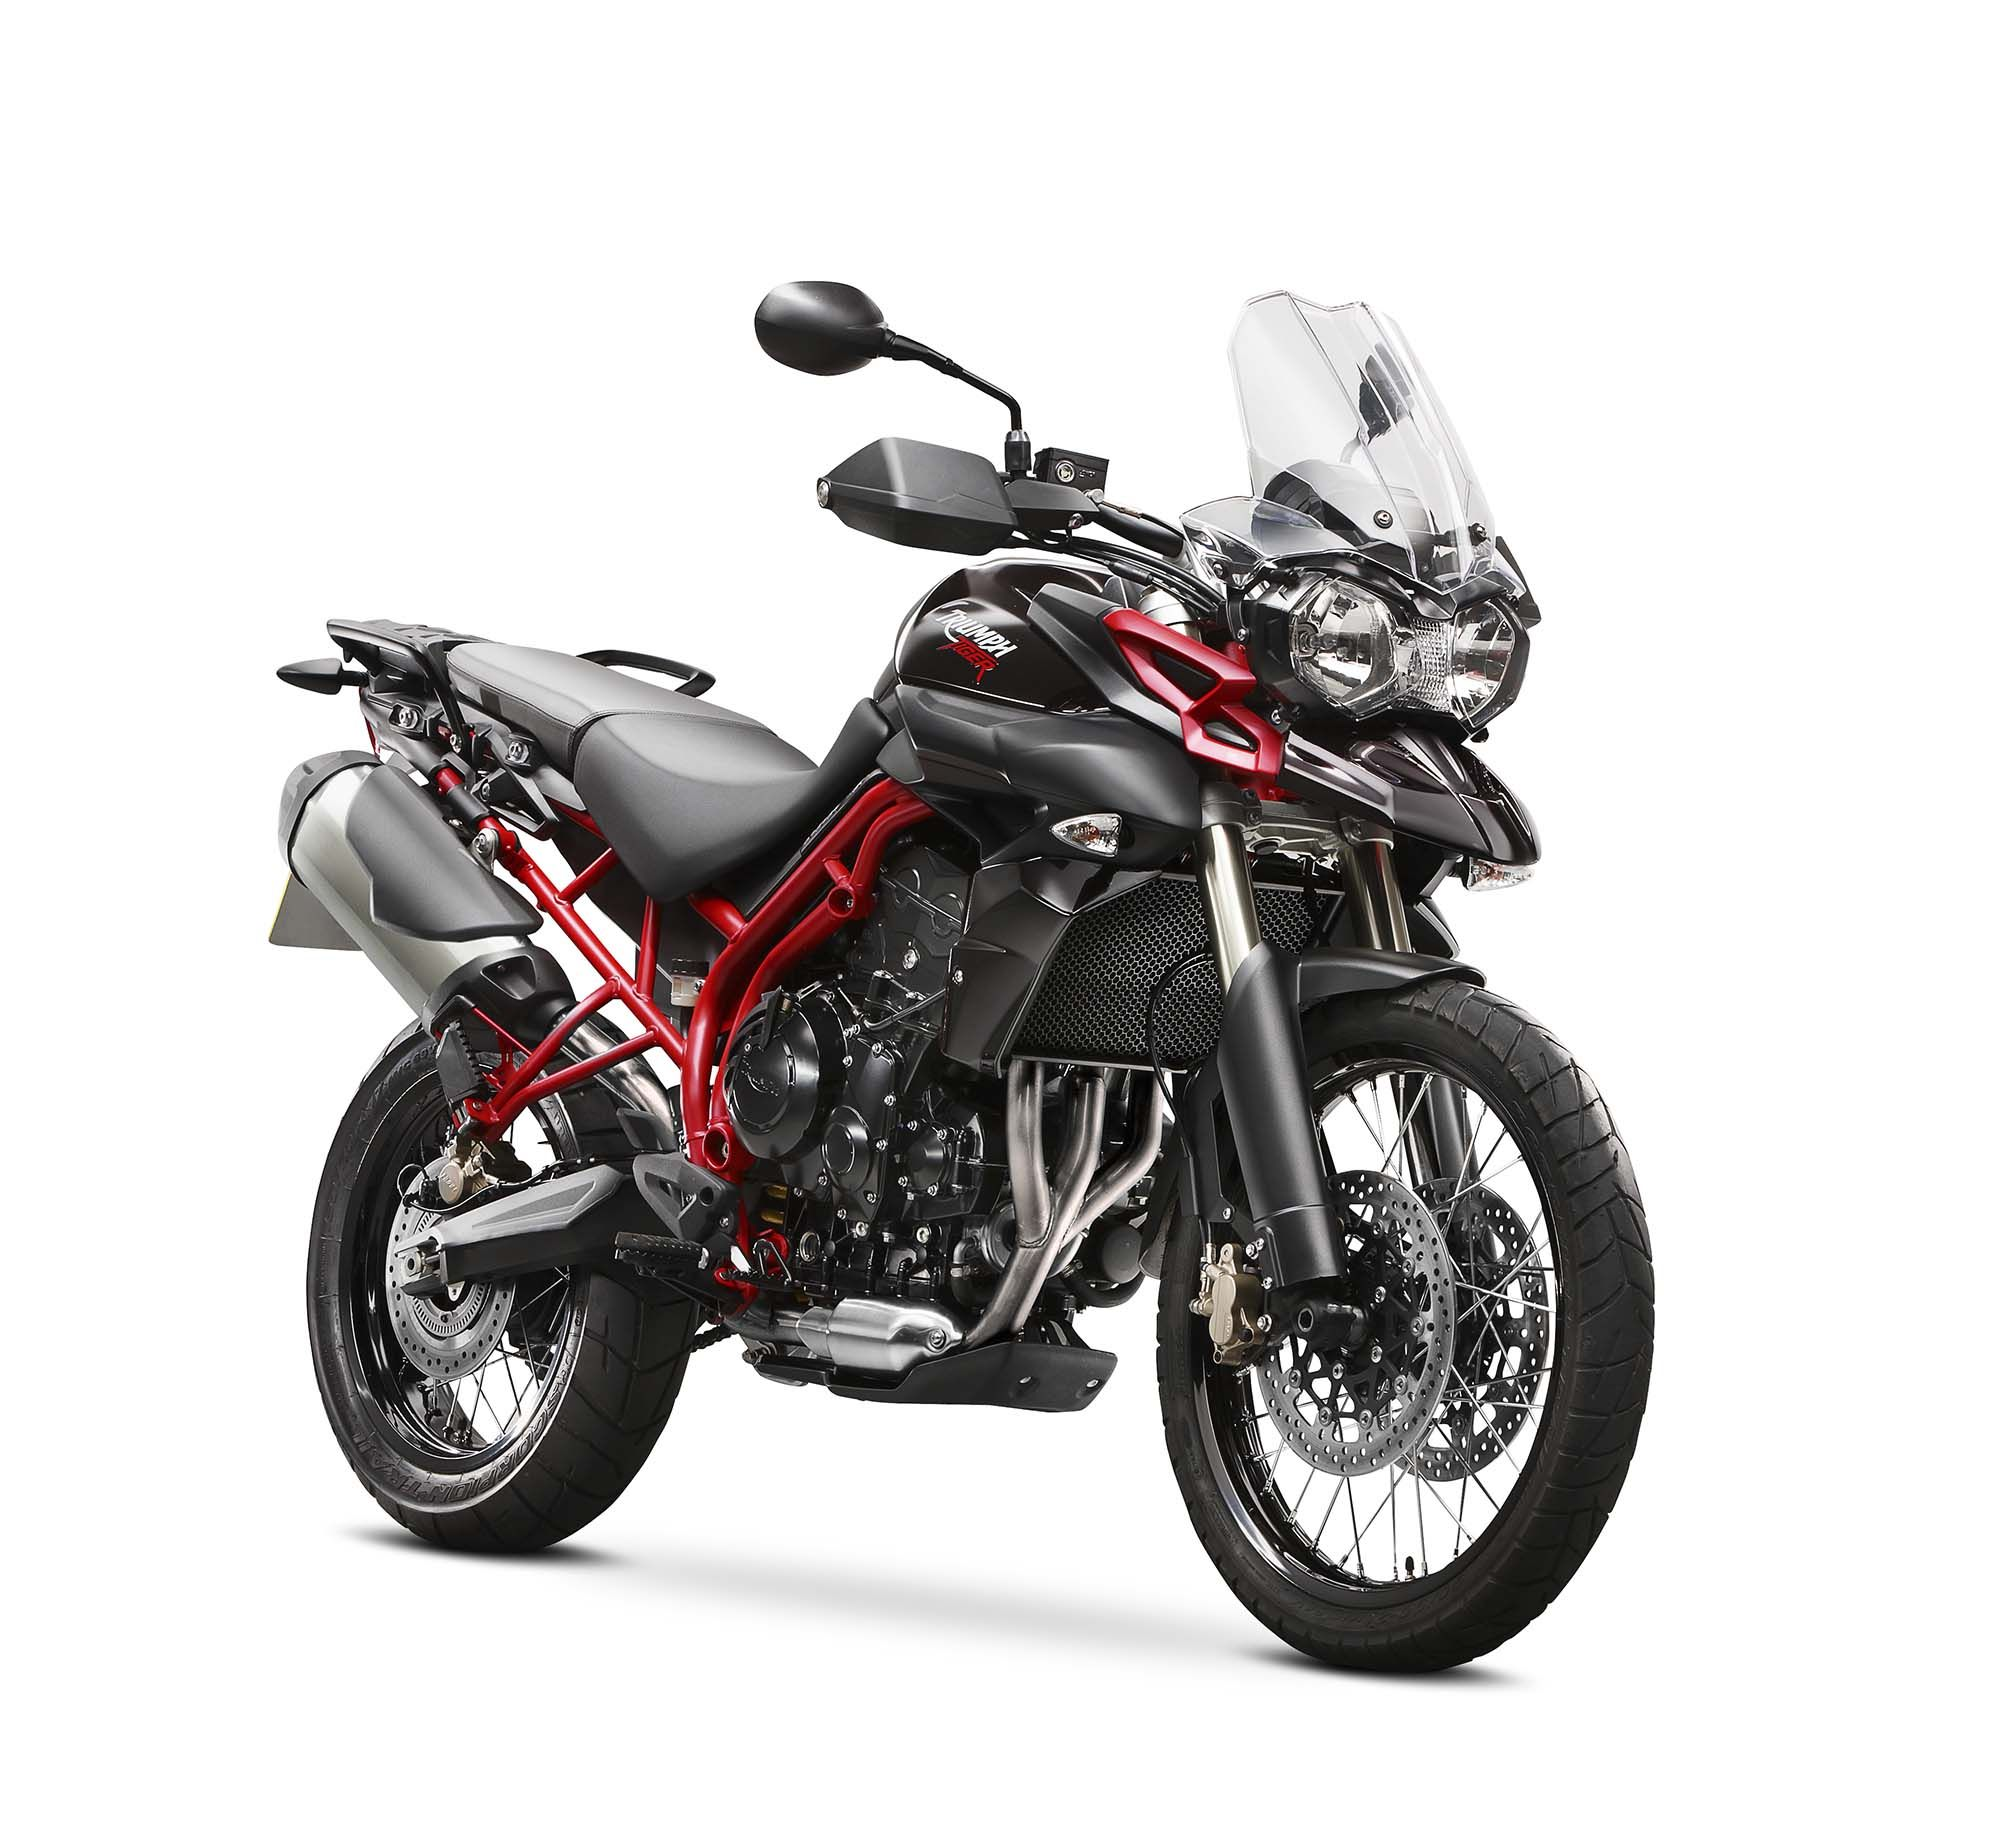 Like other recent special edition triumphs the 2014 triumph tiger 800 xc se wears a red frame and black paint no other upgrades are evident